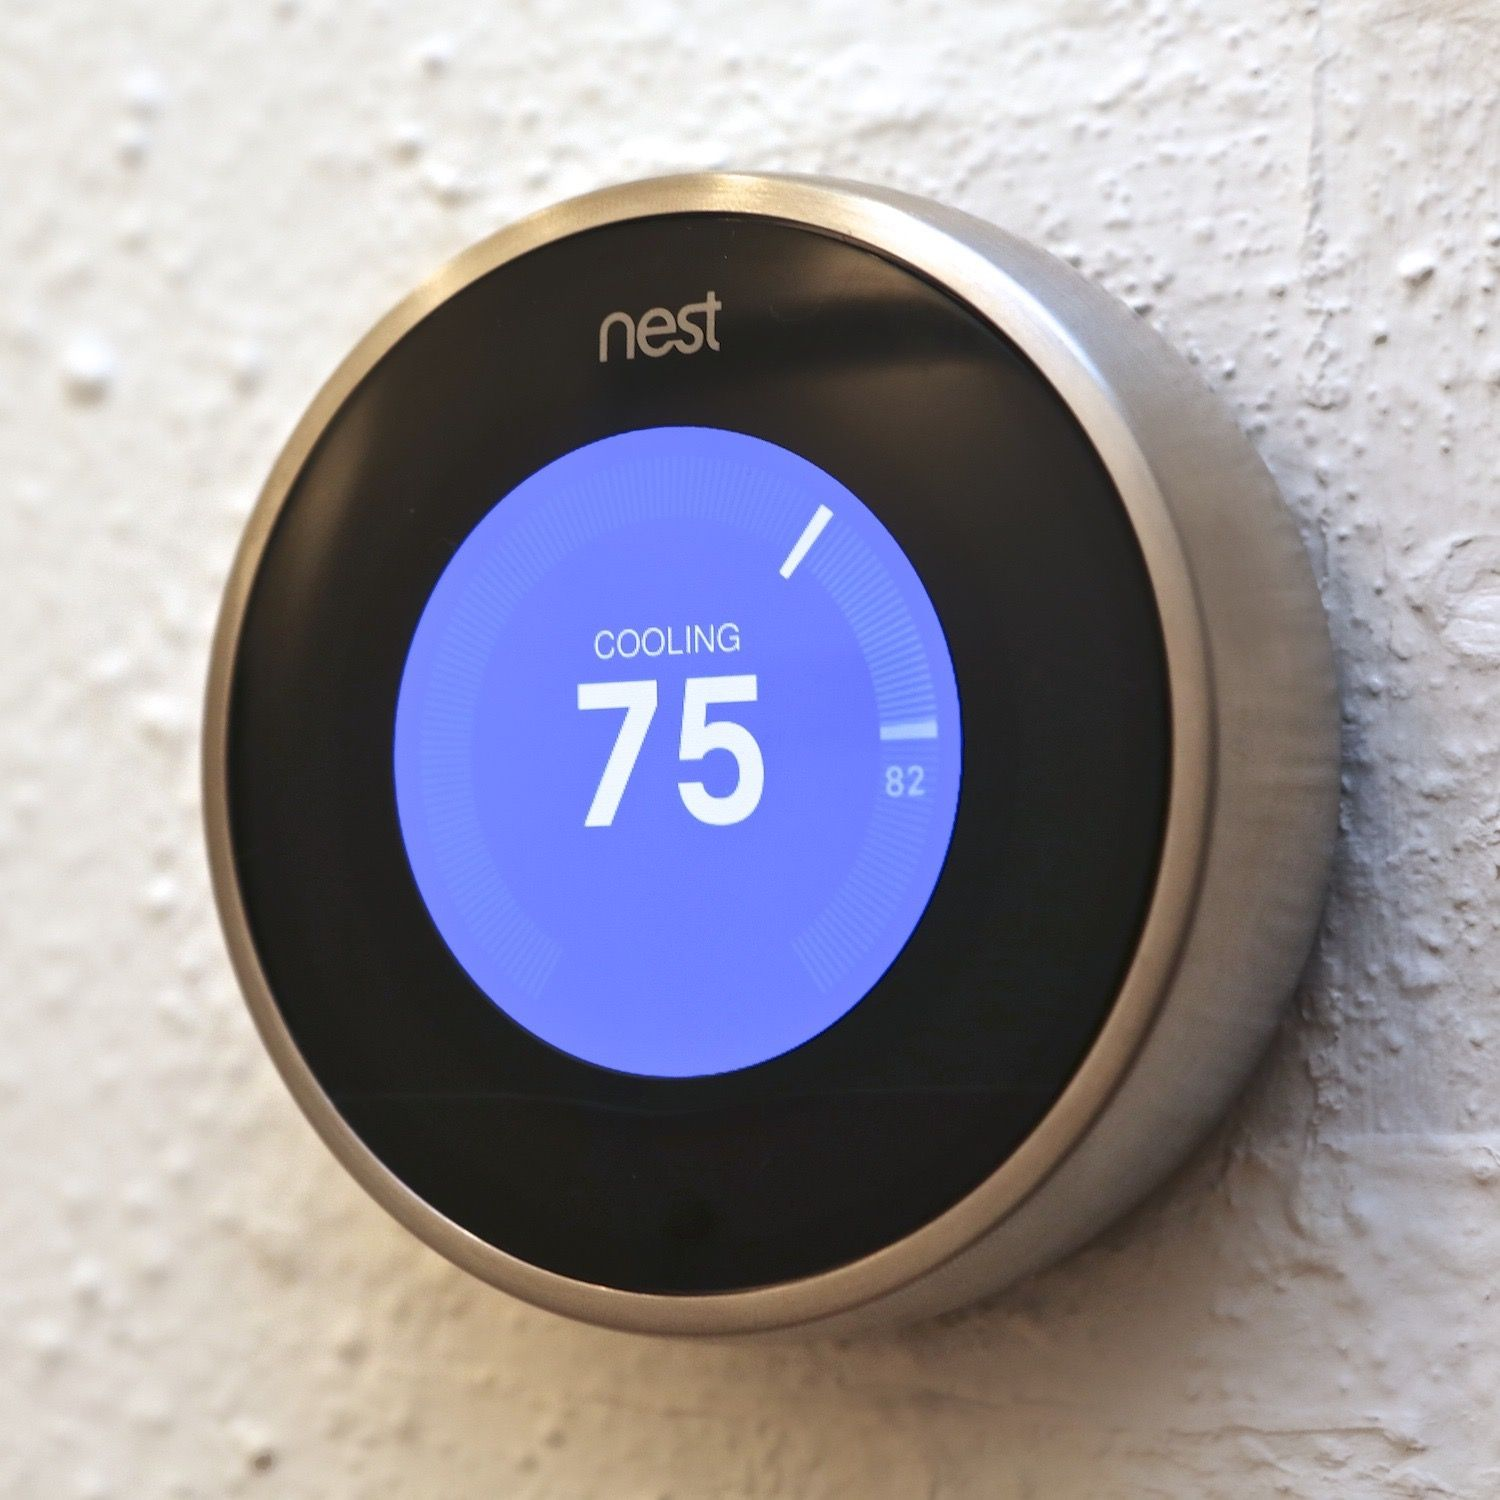 How To Install a Nest Thermostat Nest thermostat, Nest